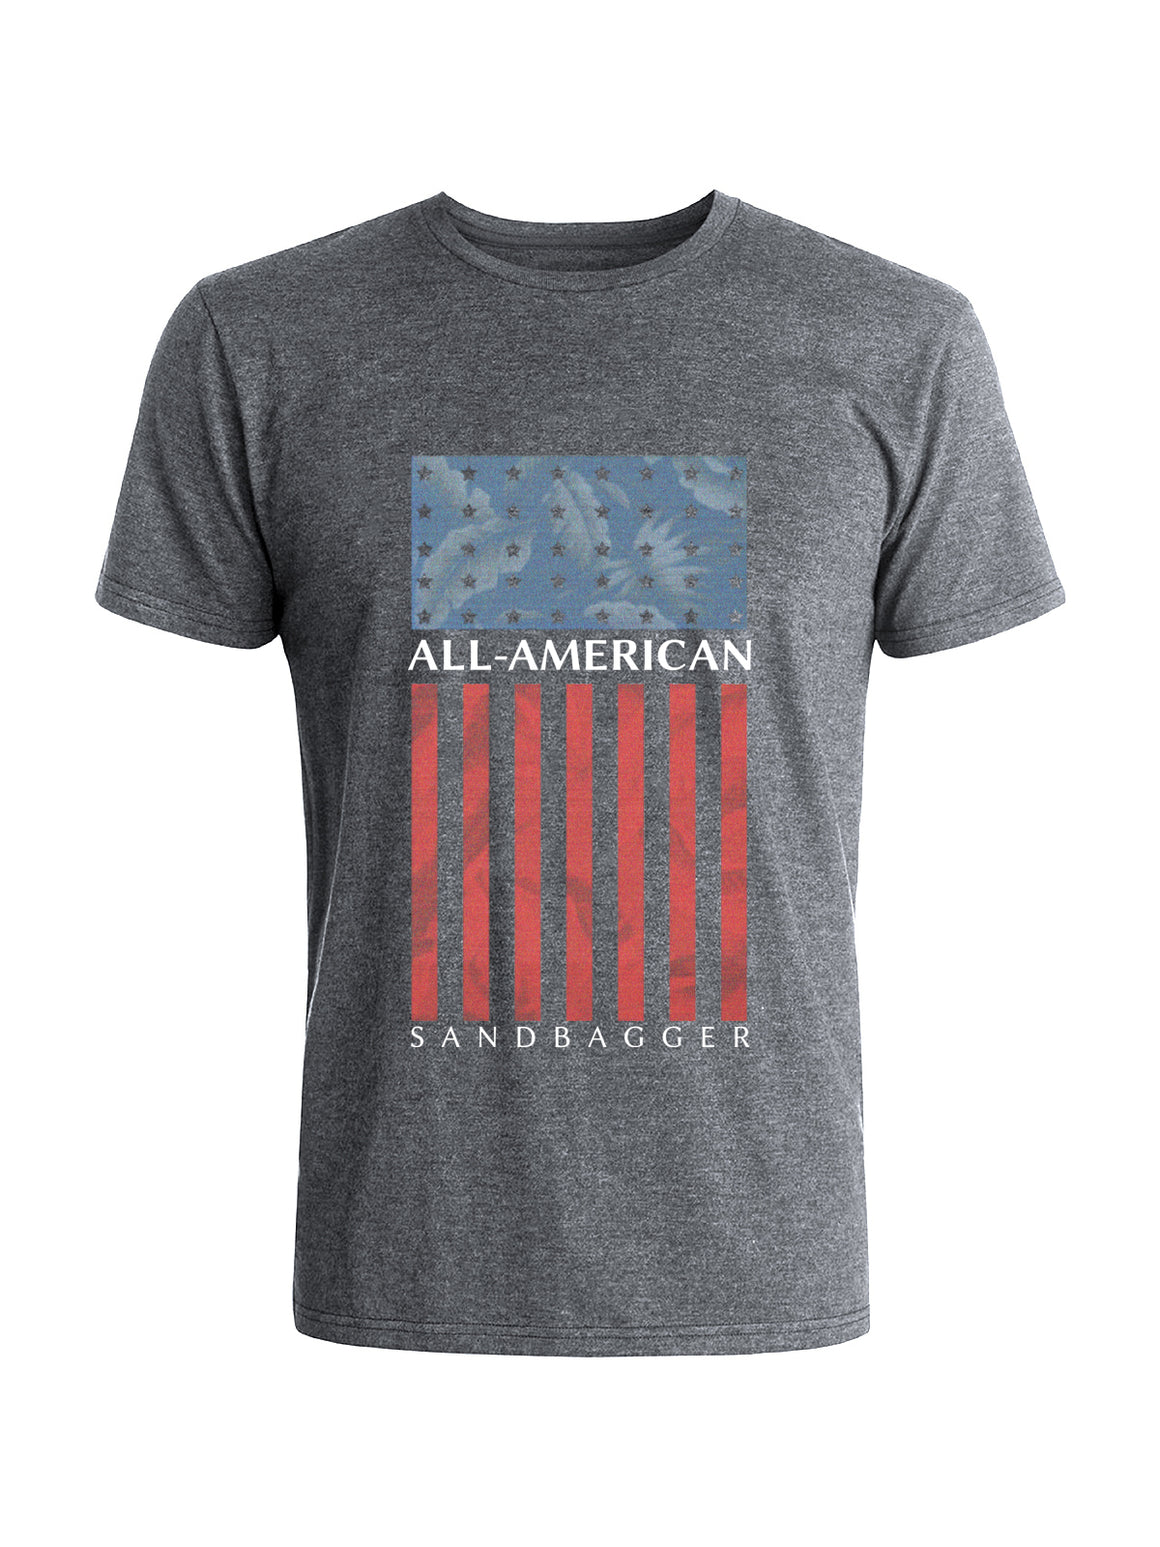 All American Sandbagger Tee -  Steel (Red/White/Blue)